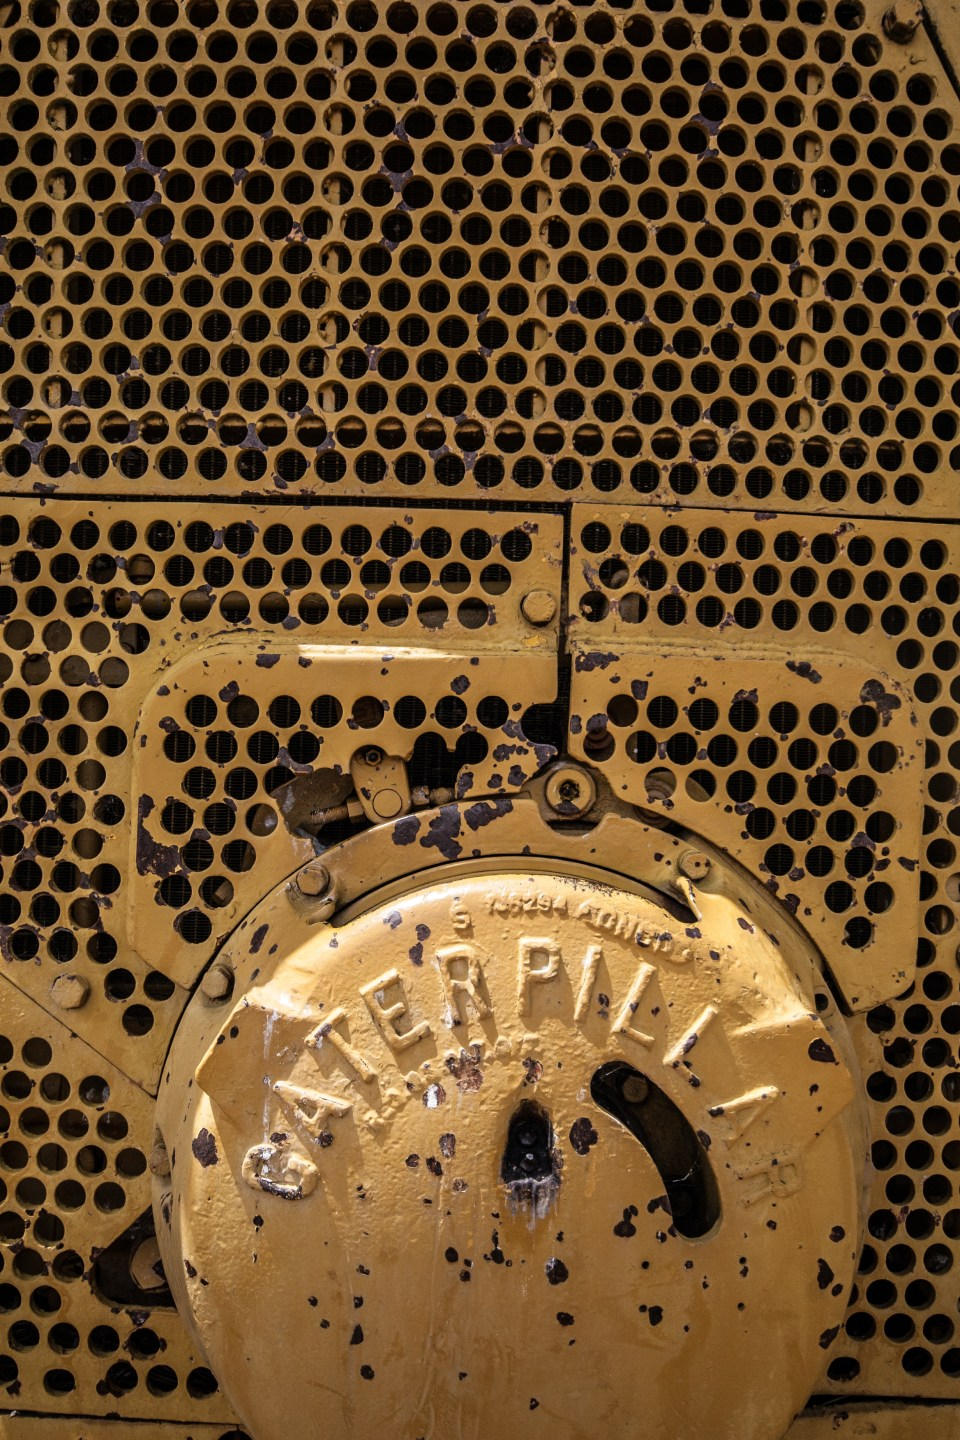 front grille of a caterpillar bulldozer